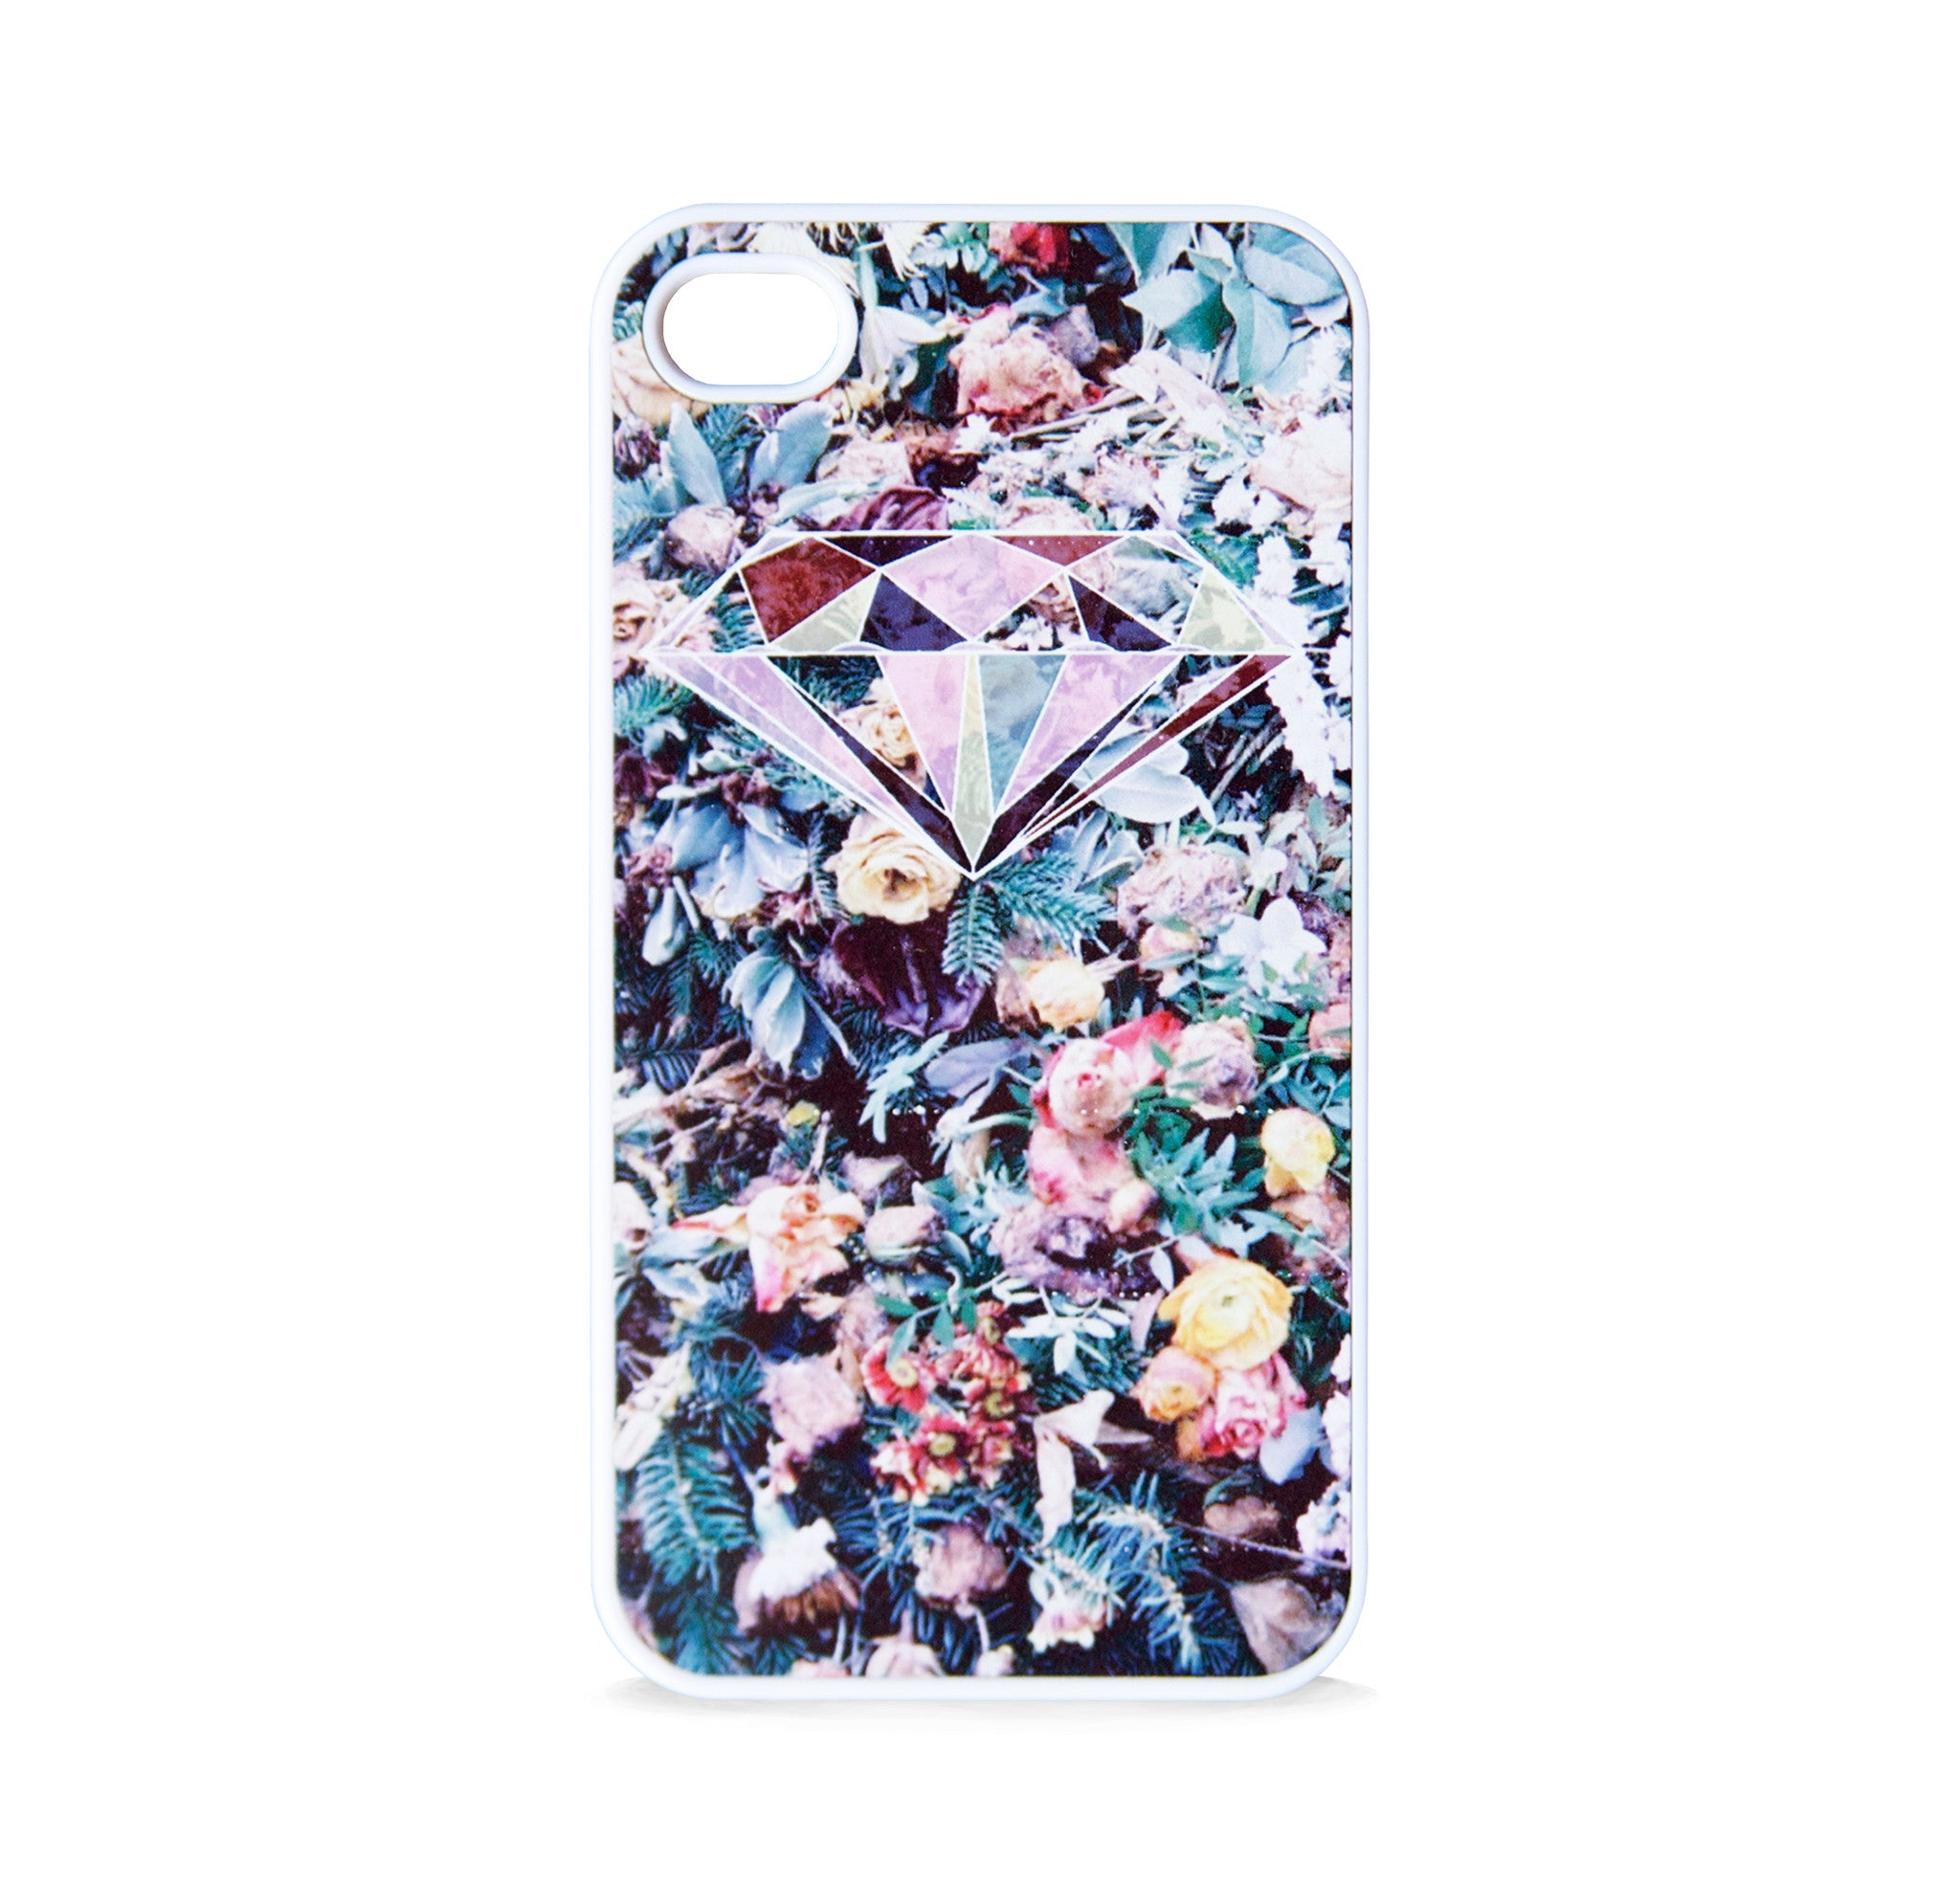 DIAMOND ON FLOWERS FOR IPHONE 4/4S